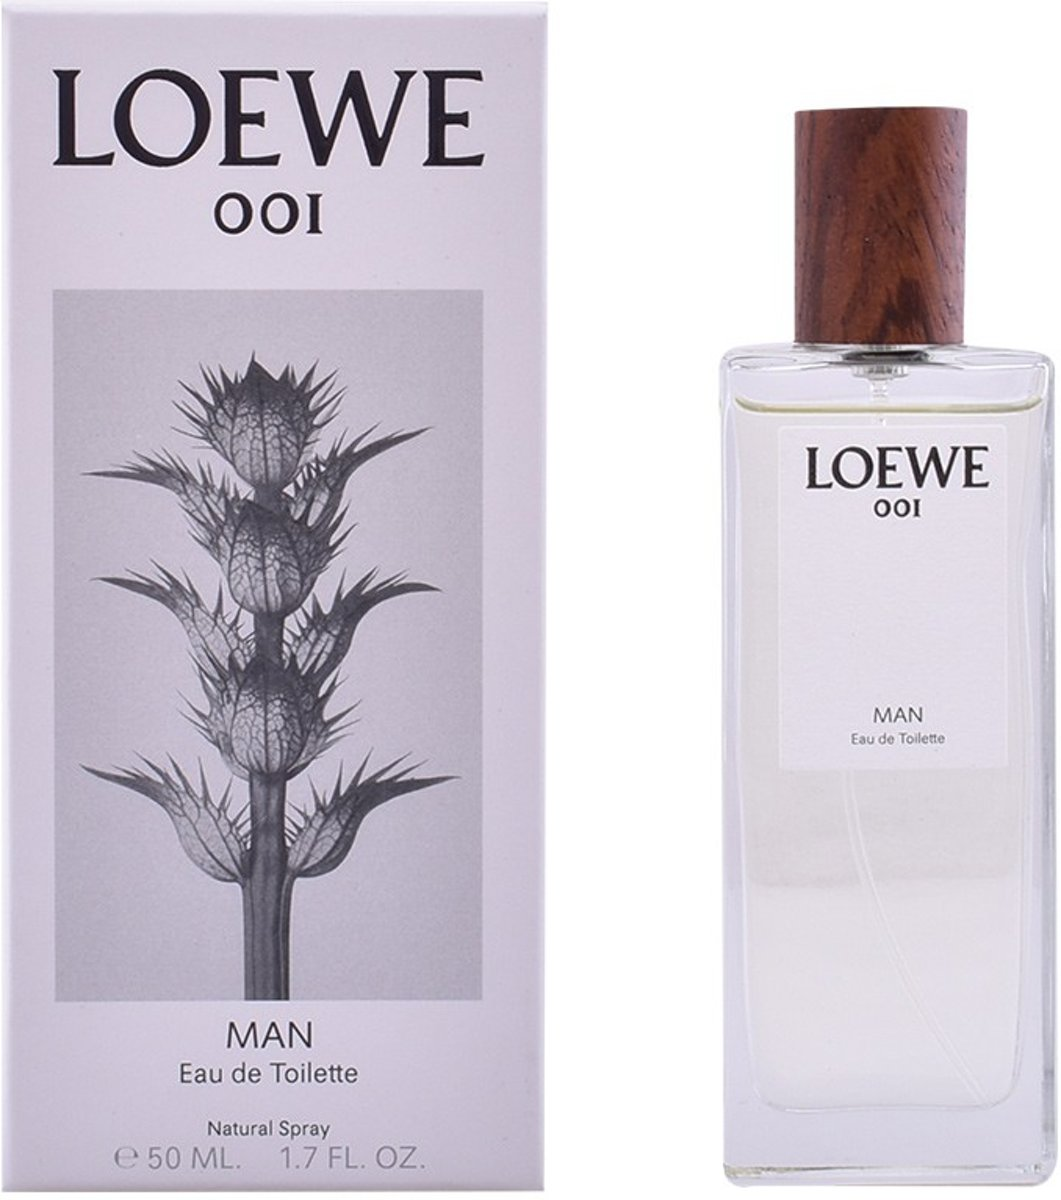 MULTI BUNDEL 2 stuks LOEWE 001 MAN Eau de Toilette Spray 50 ml